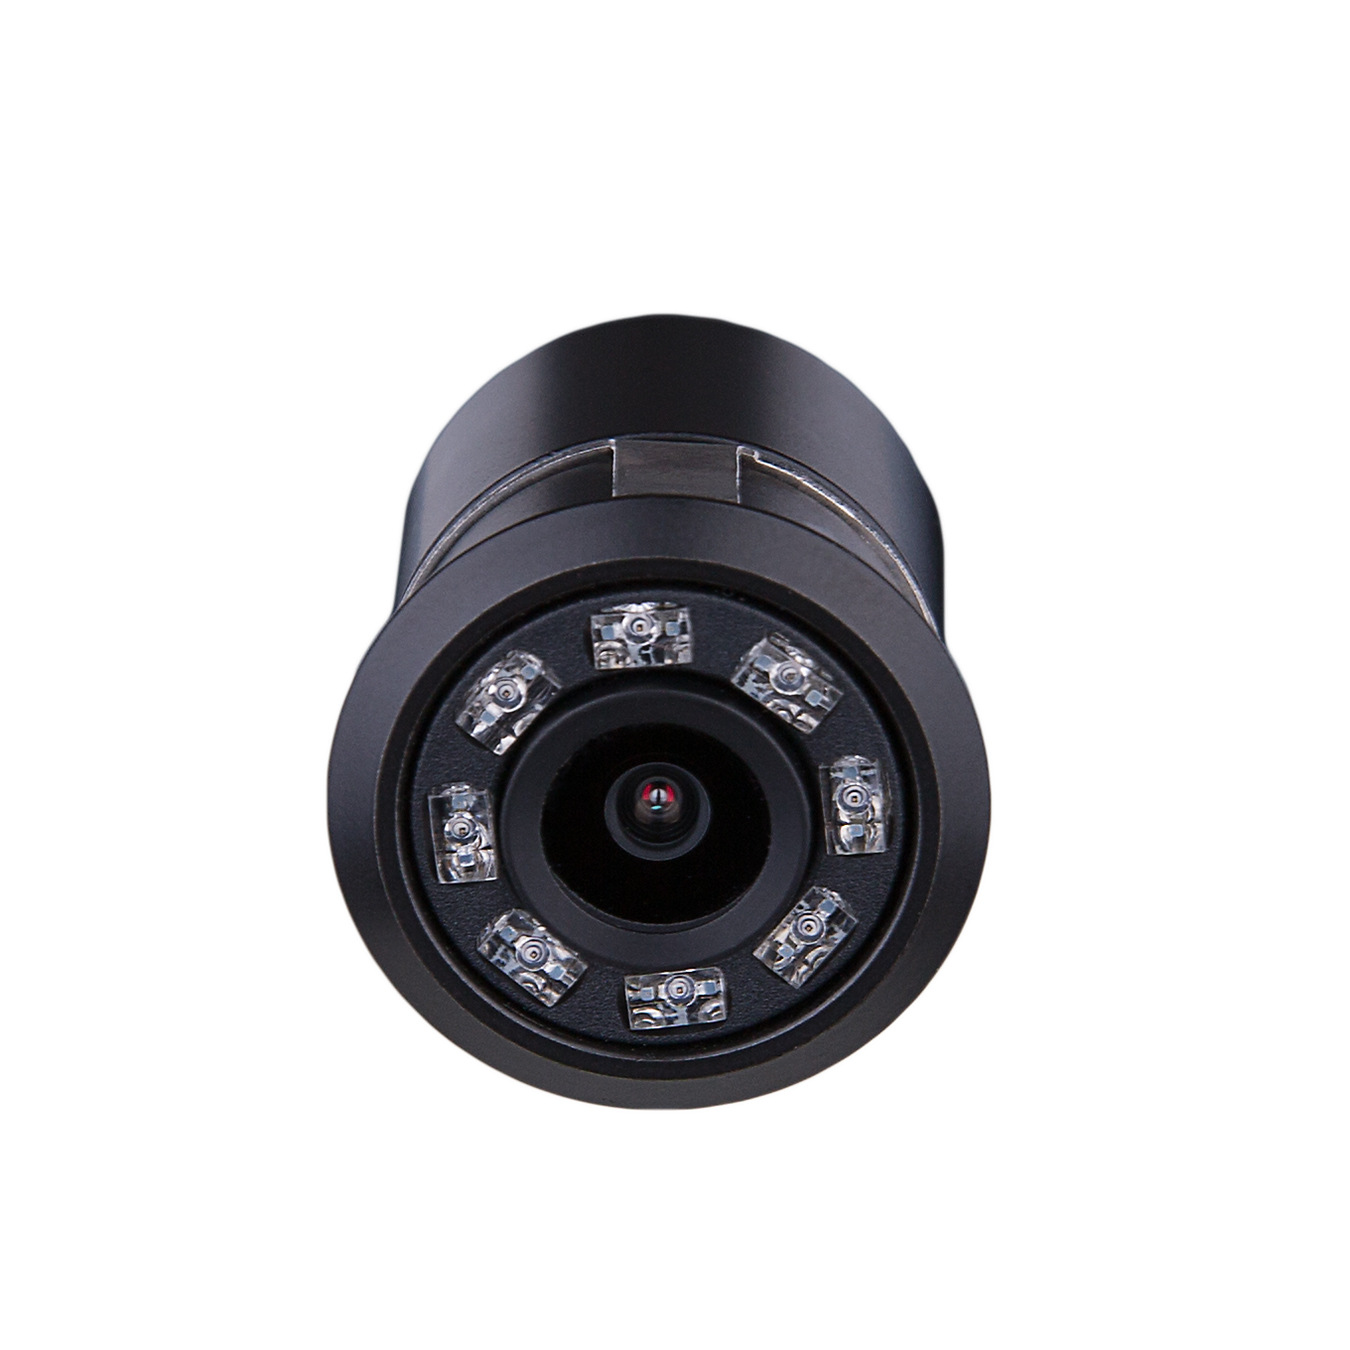 Rearview Camera Car Mounted Universal Punched Small Size LED High-definition Waterproof Rear View Image Factory Direct Selling